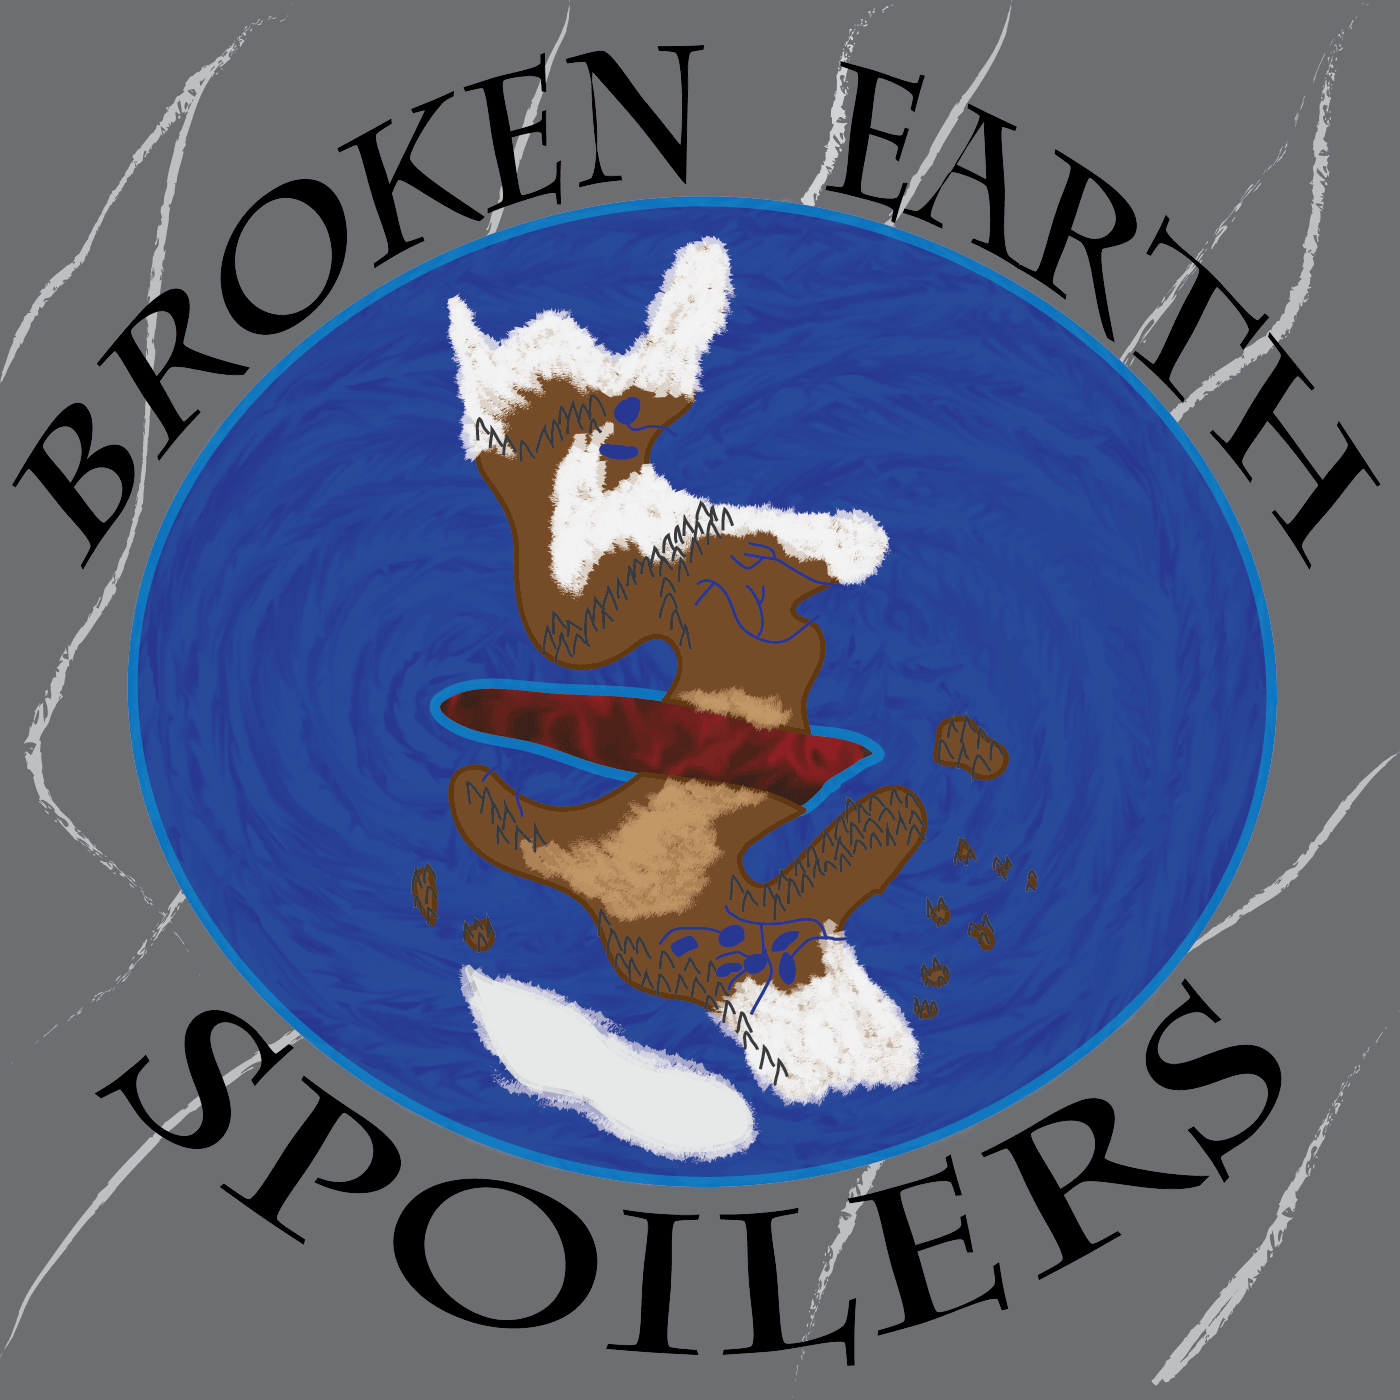 Broken Earth Spoilers Podcast show image